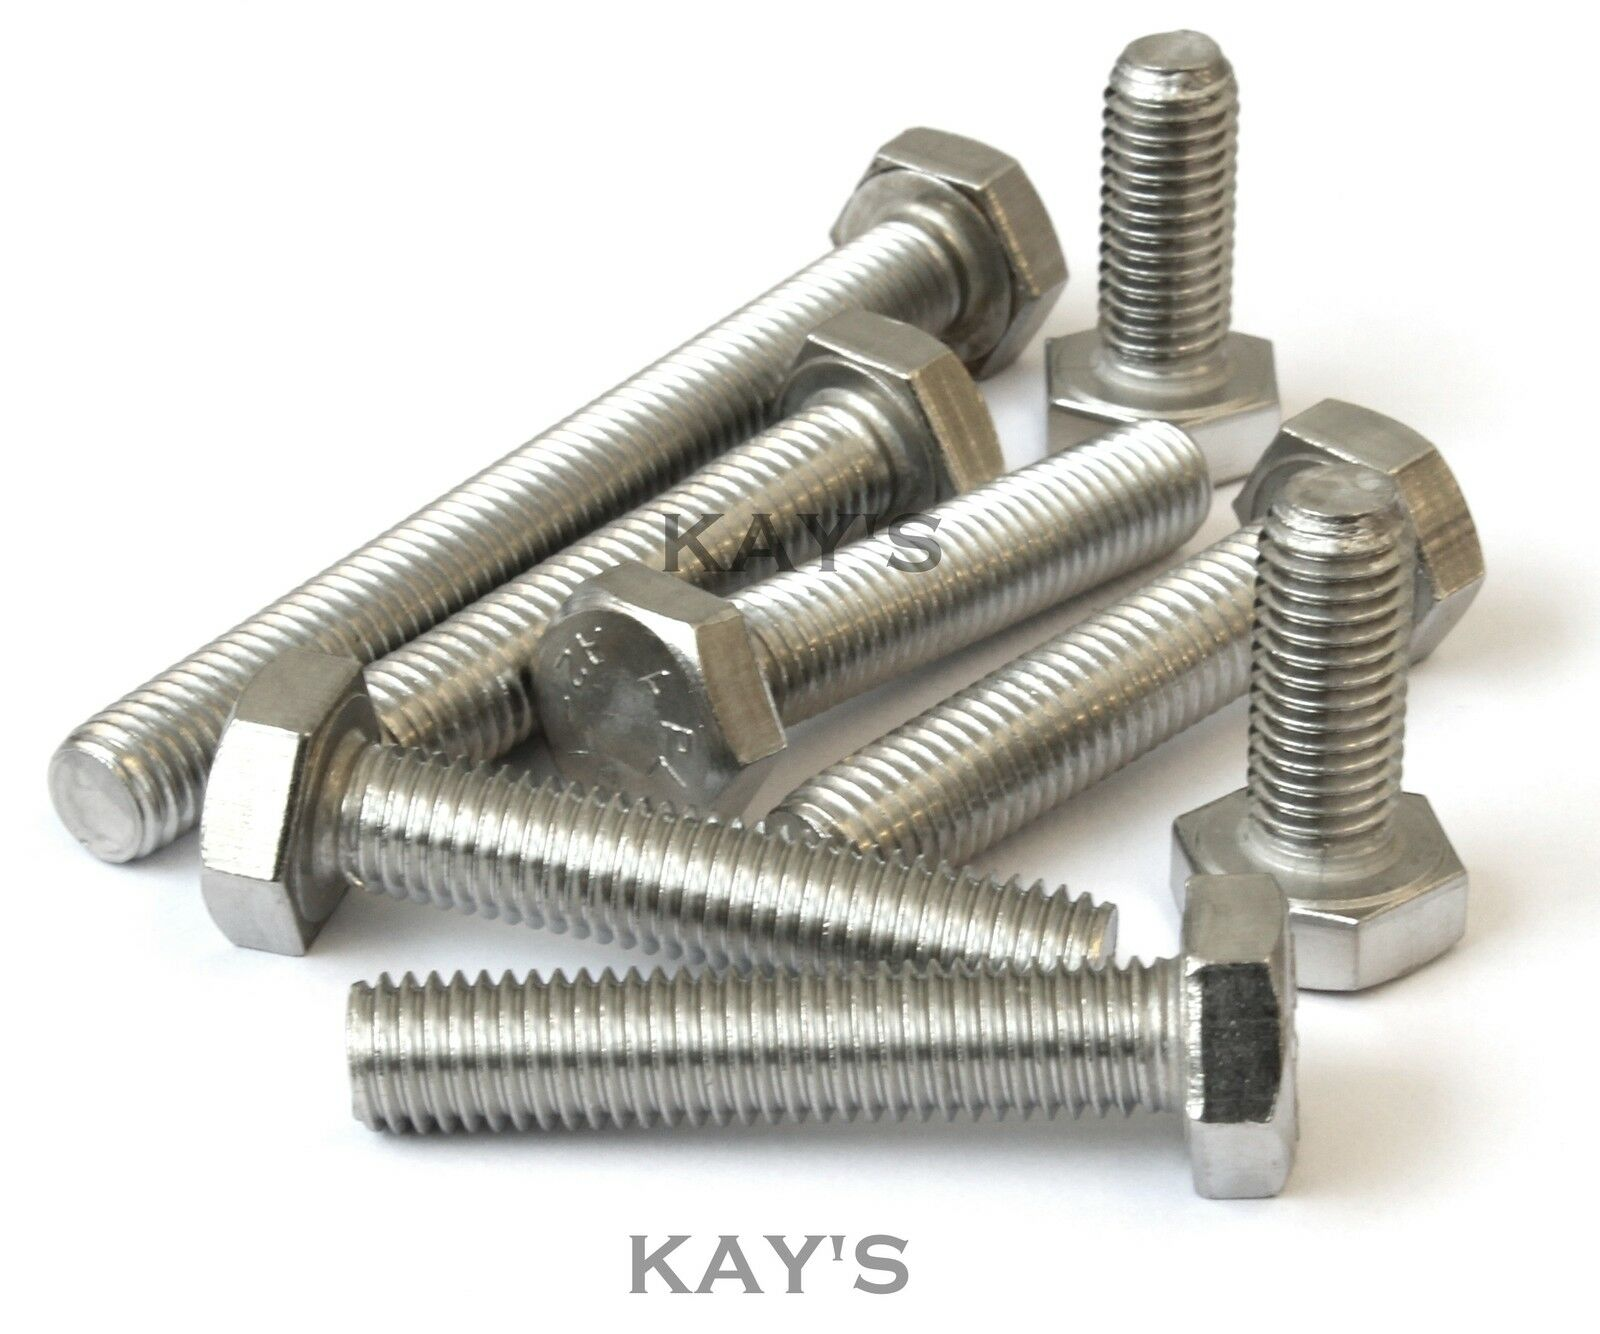 M12 HEXAGON HEAD SET SCREWS FULLY THREADED METRIC BOLTS A2 STAINLESS STEEL